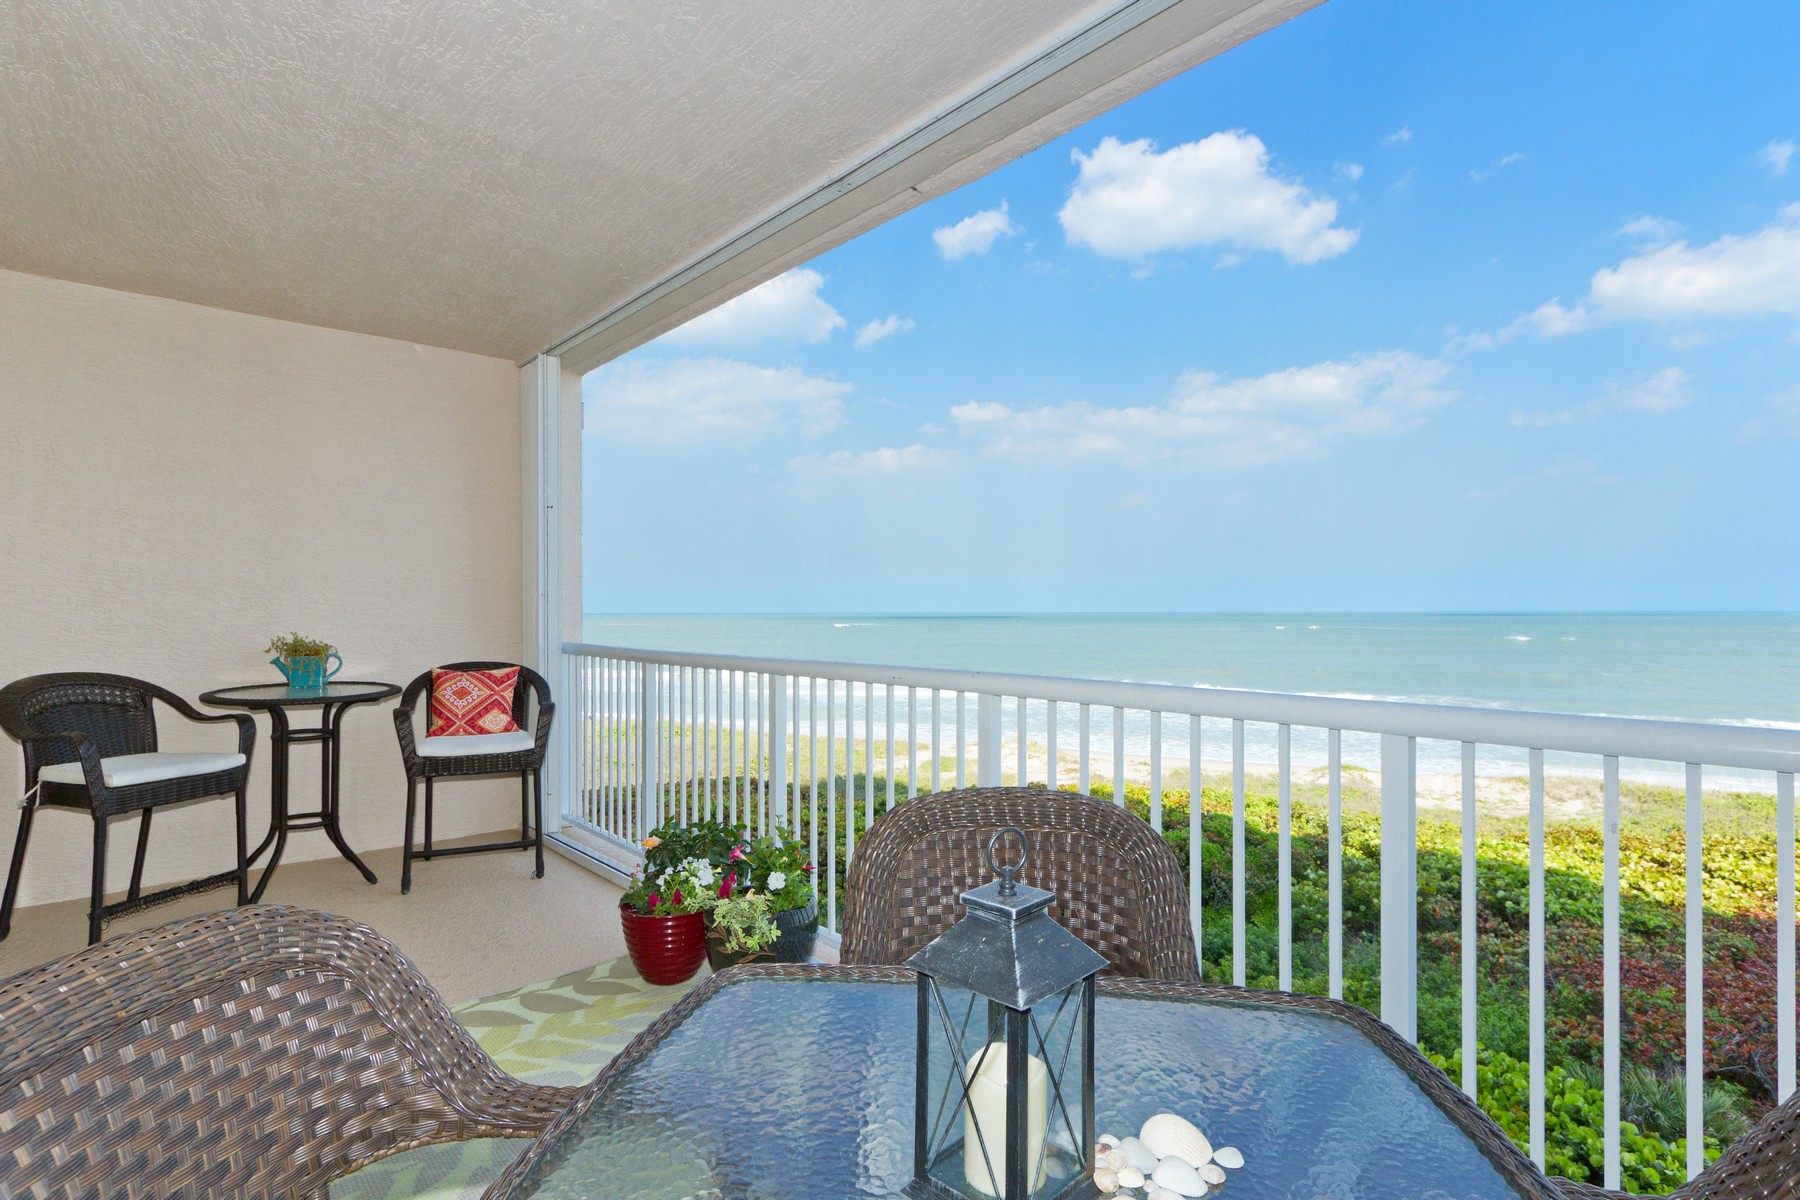 Property for Sale at Enjoy Salty Breezes and Sandy Toes, LIVE Oceanfront! 4180 N Hwy A1a, #402B Hutchinson Island, Florida 34949 United States